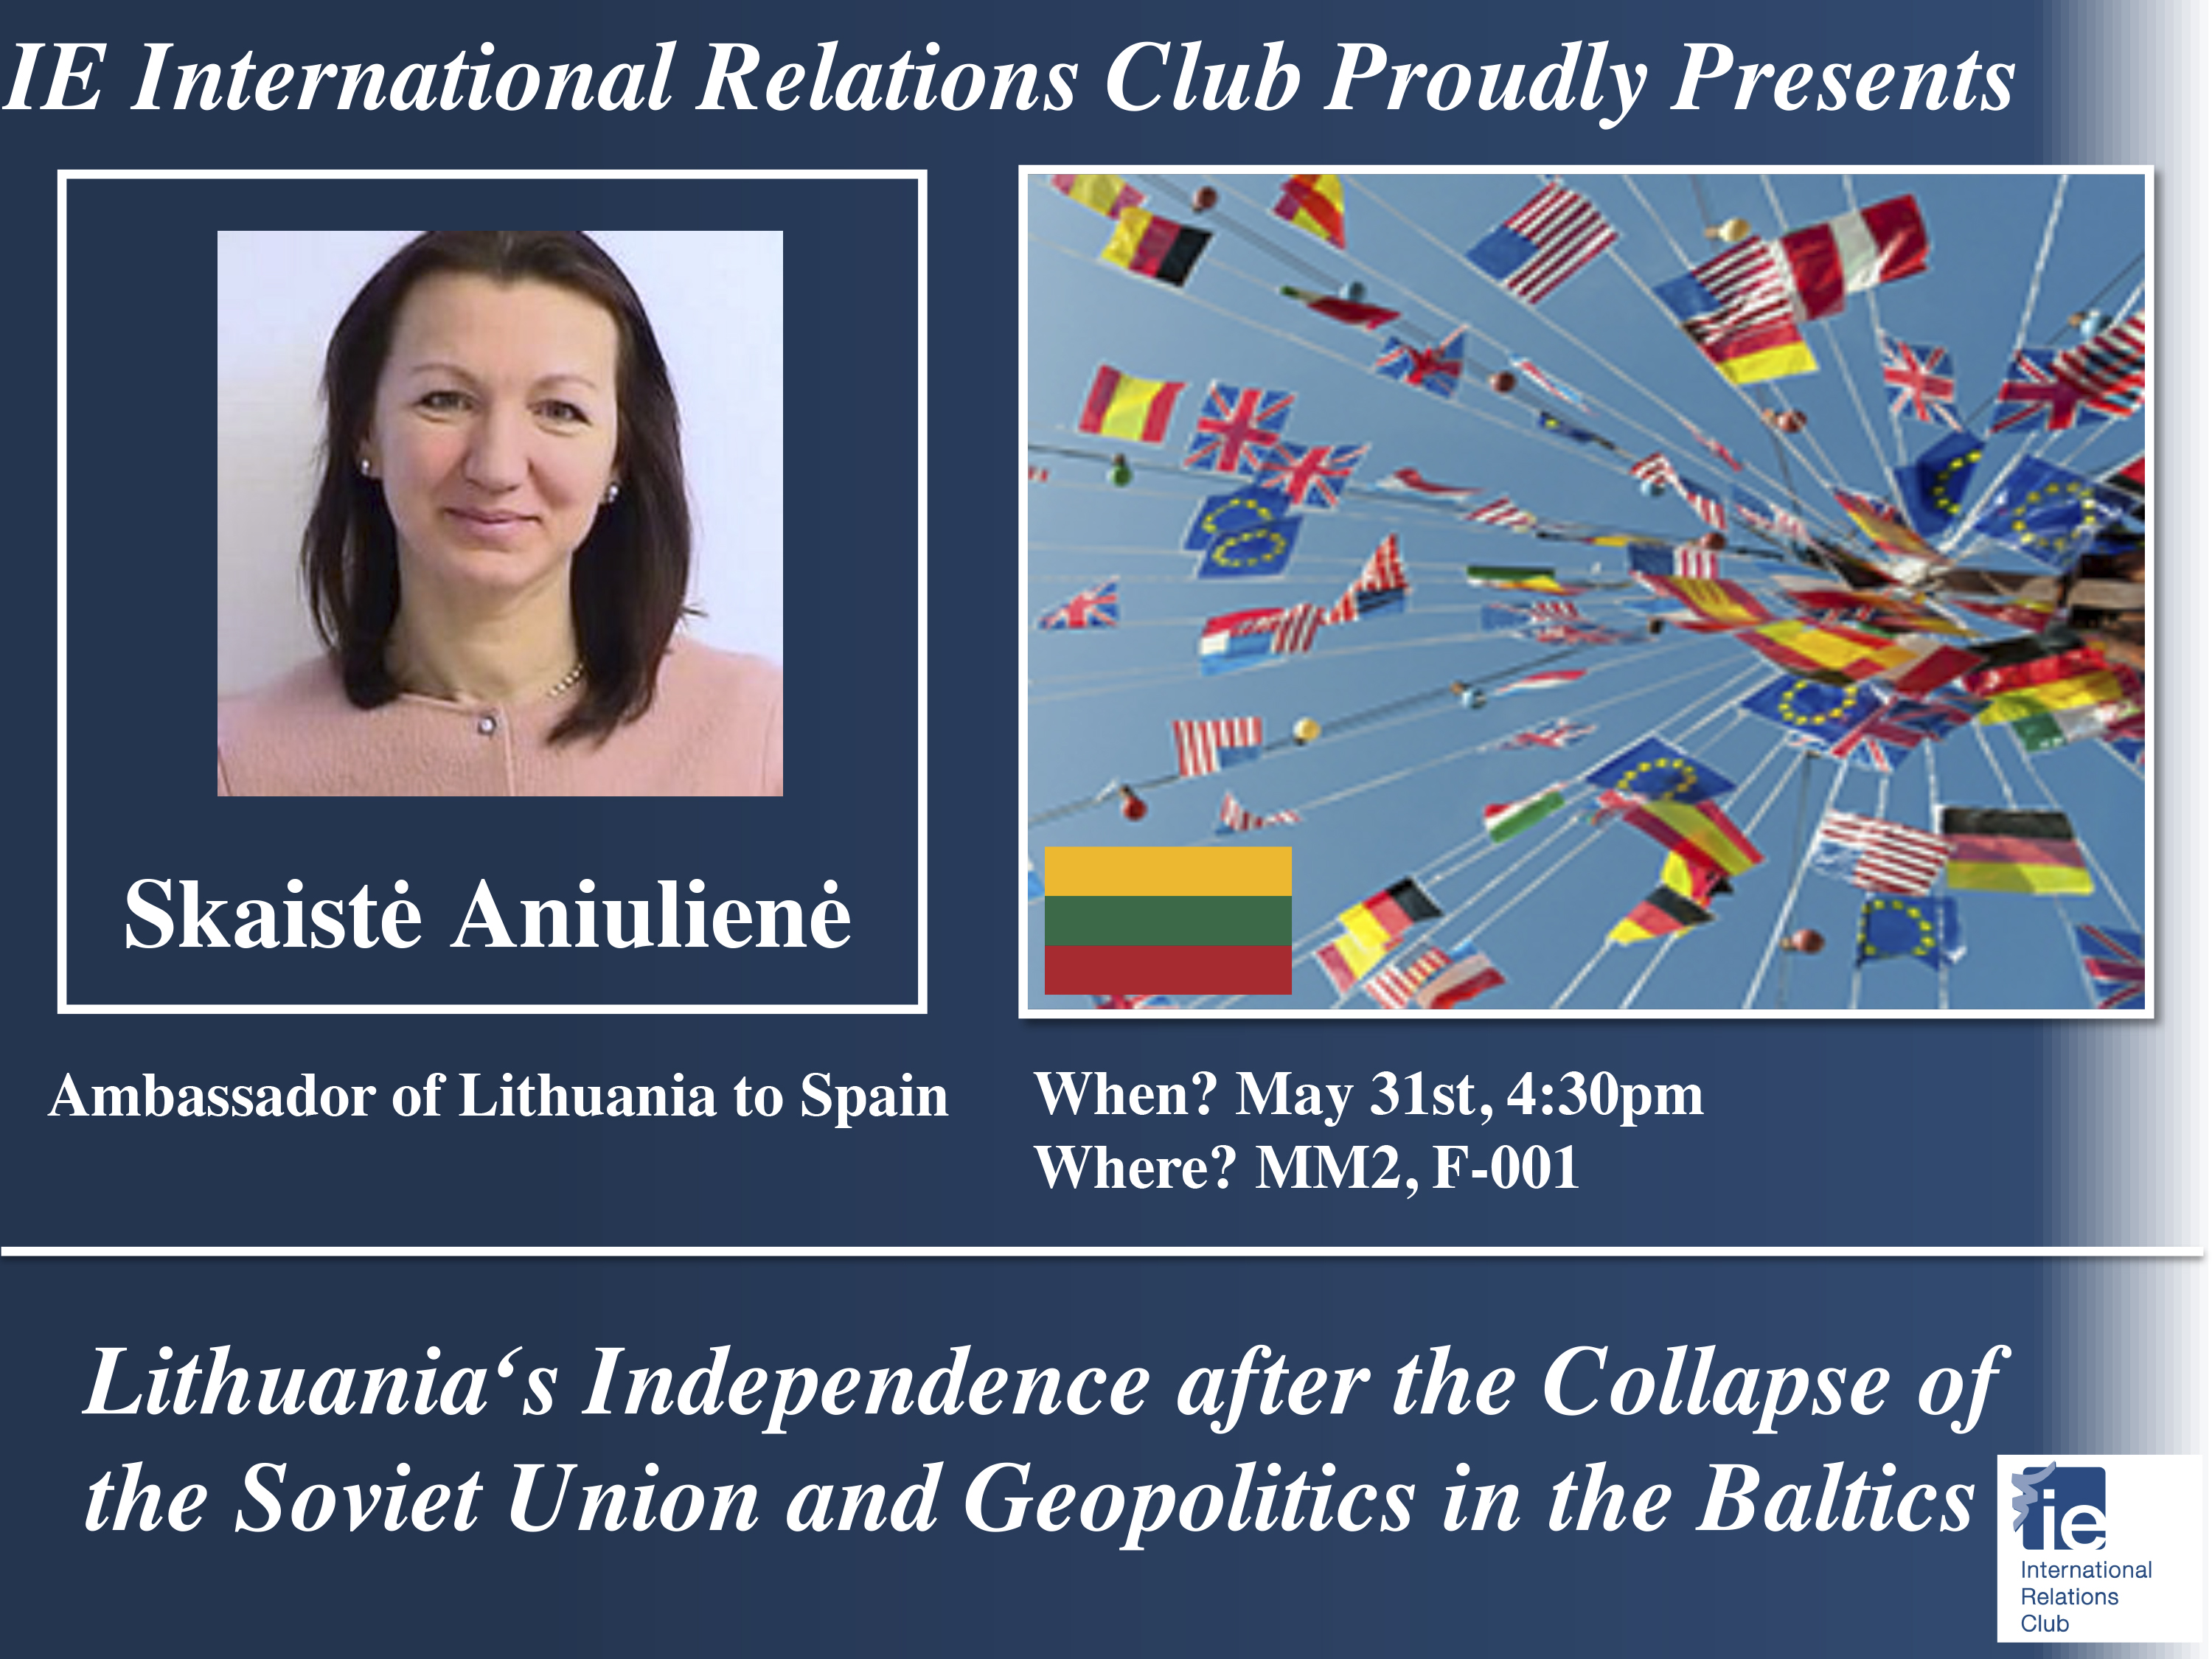 Lithuanian Ambassador to Spain: Geopolitics in Lithuania after the collapse of the Soviet Union